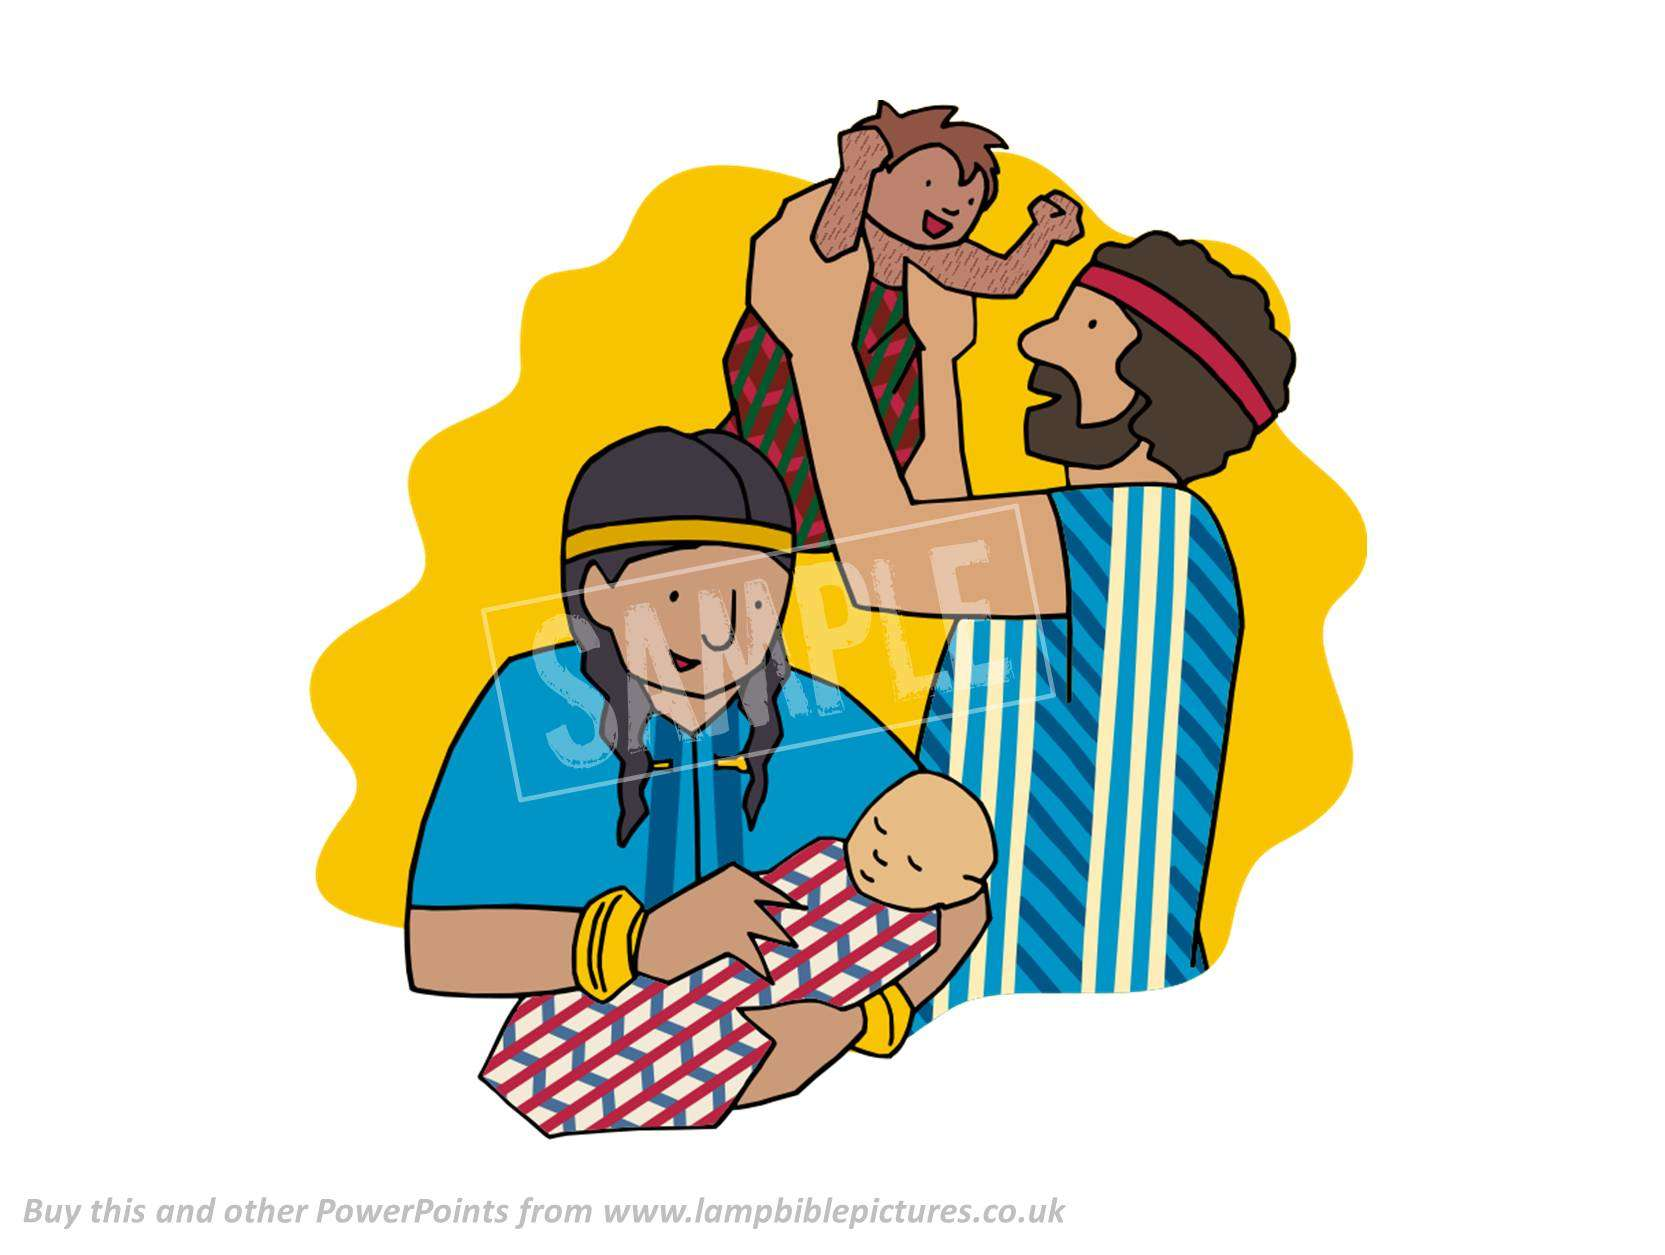 Jacob and esau clipart royalty free download Jacob & Esau - Lamp Bible Pictures royalty free download